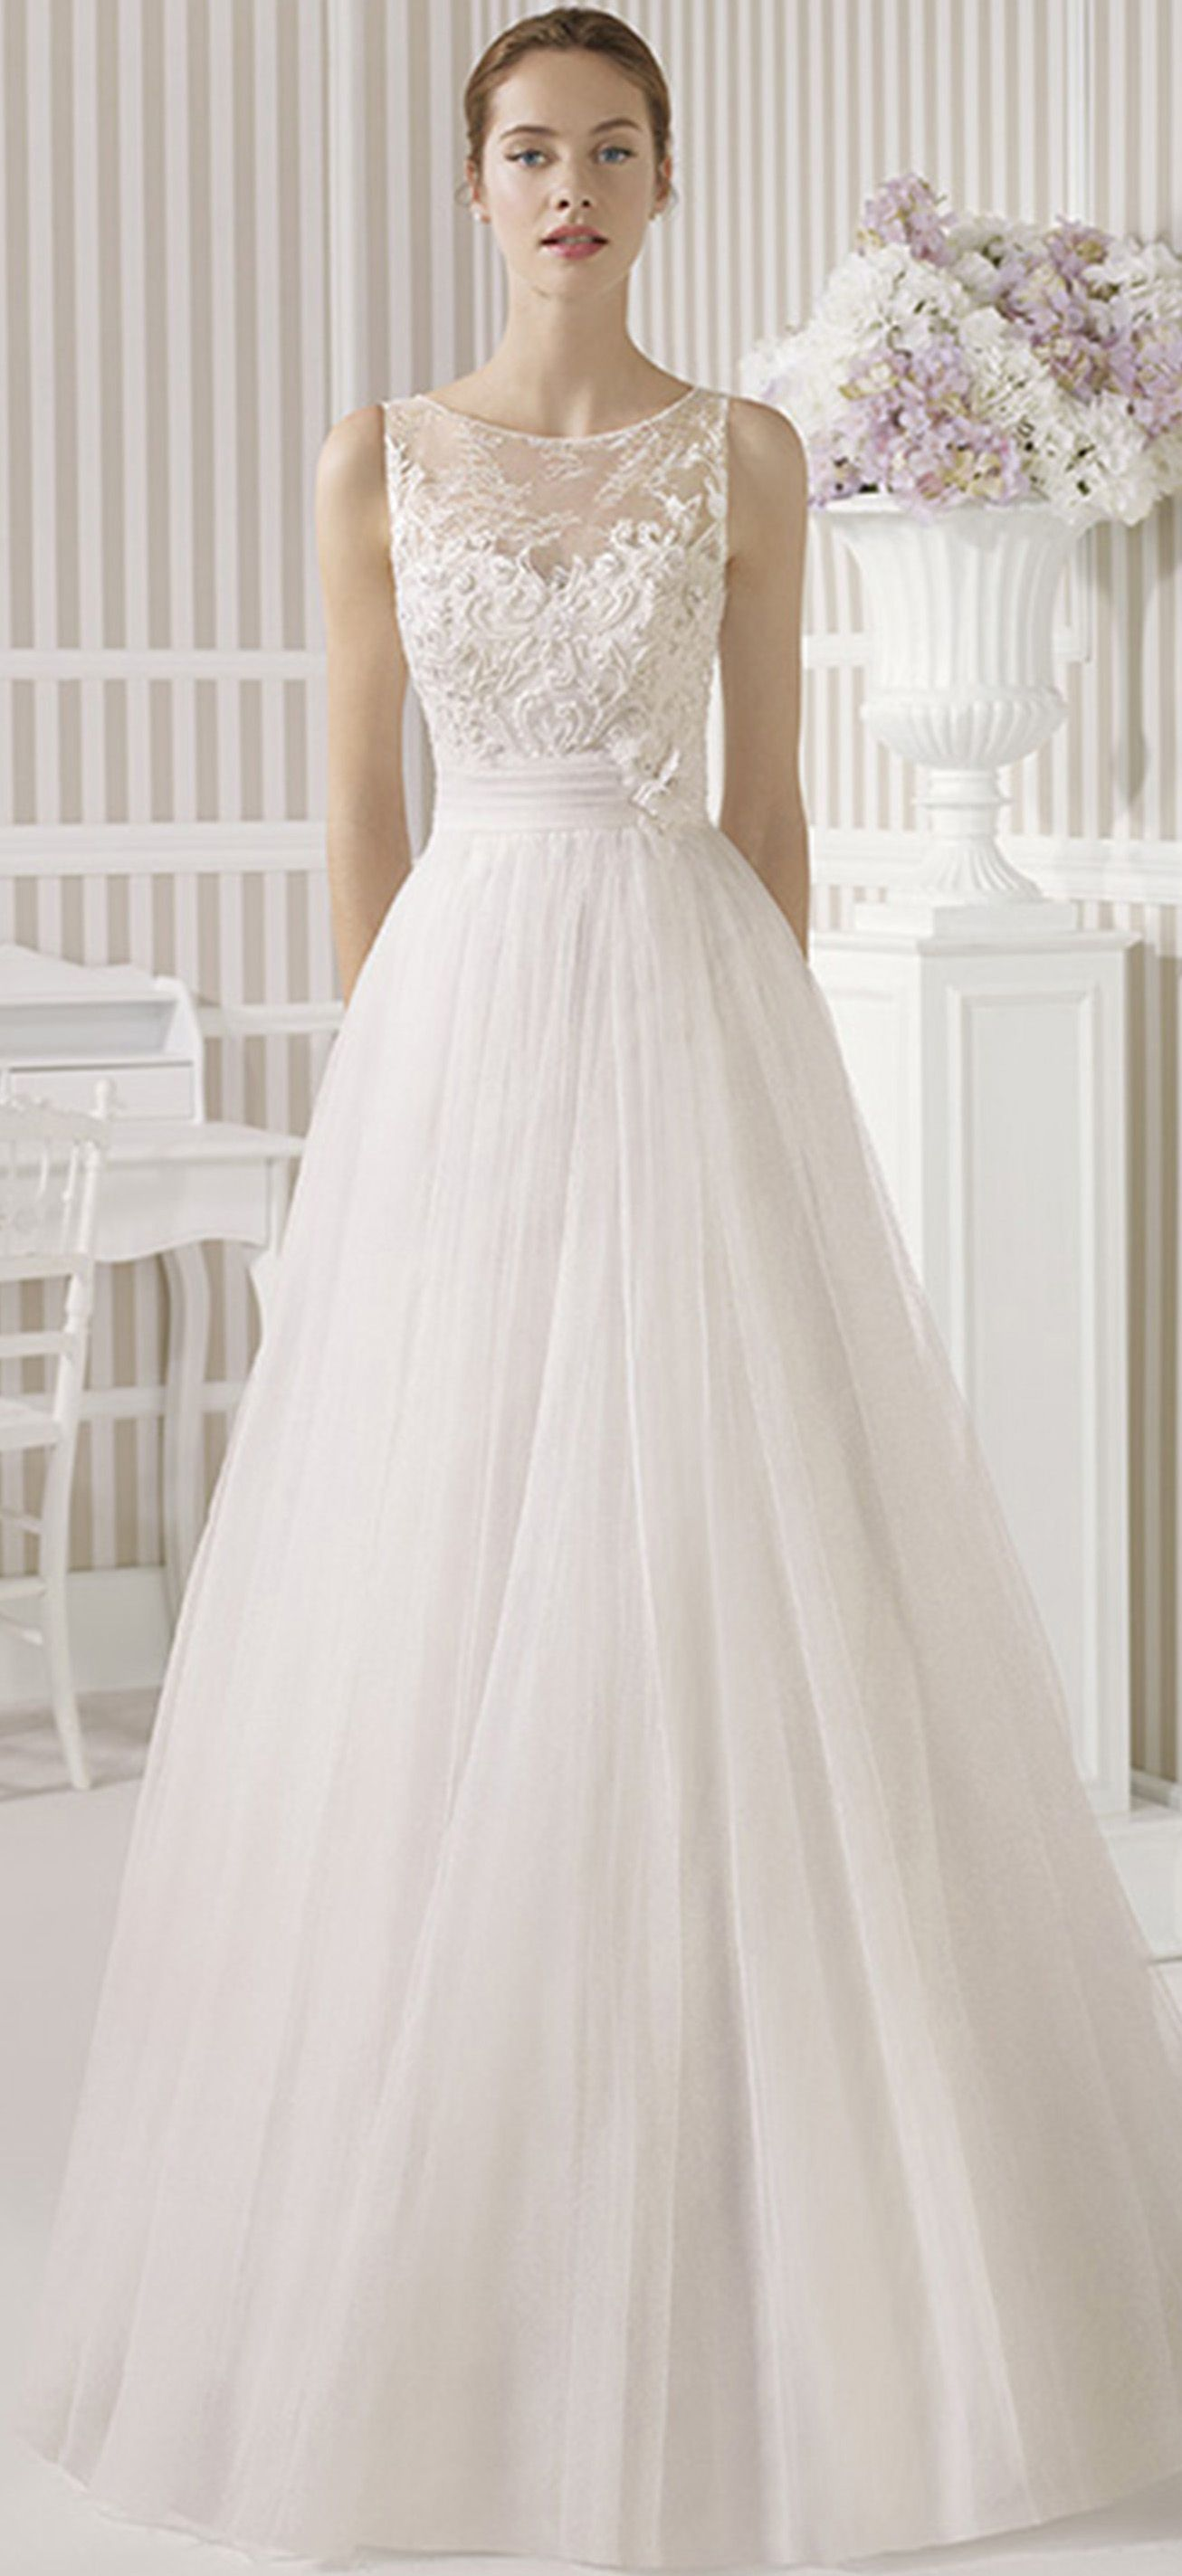 Aline scoop long lace sleeveless satinutulle wedding dress with